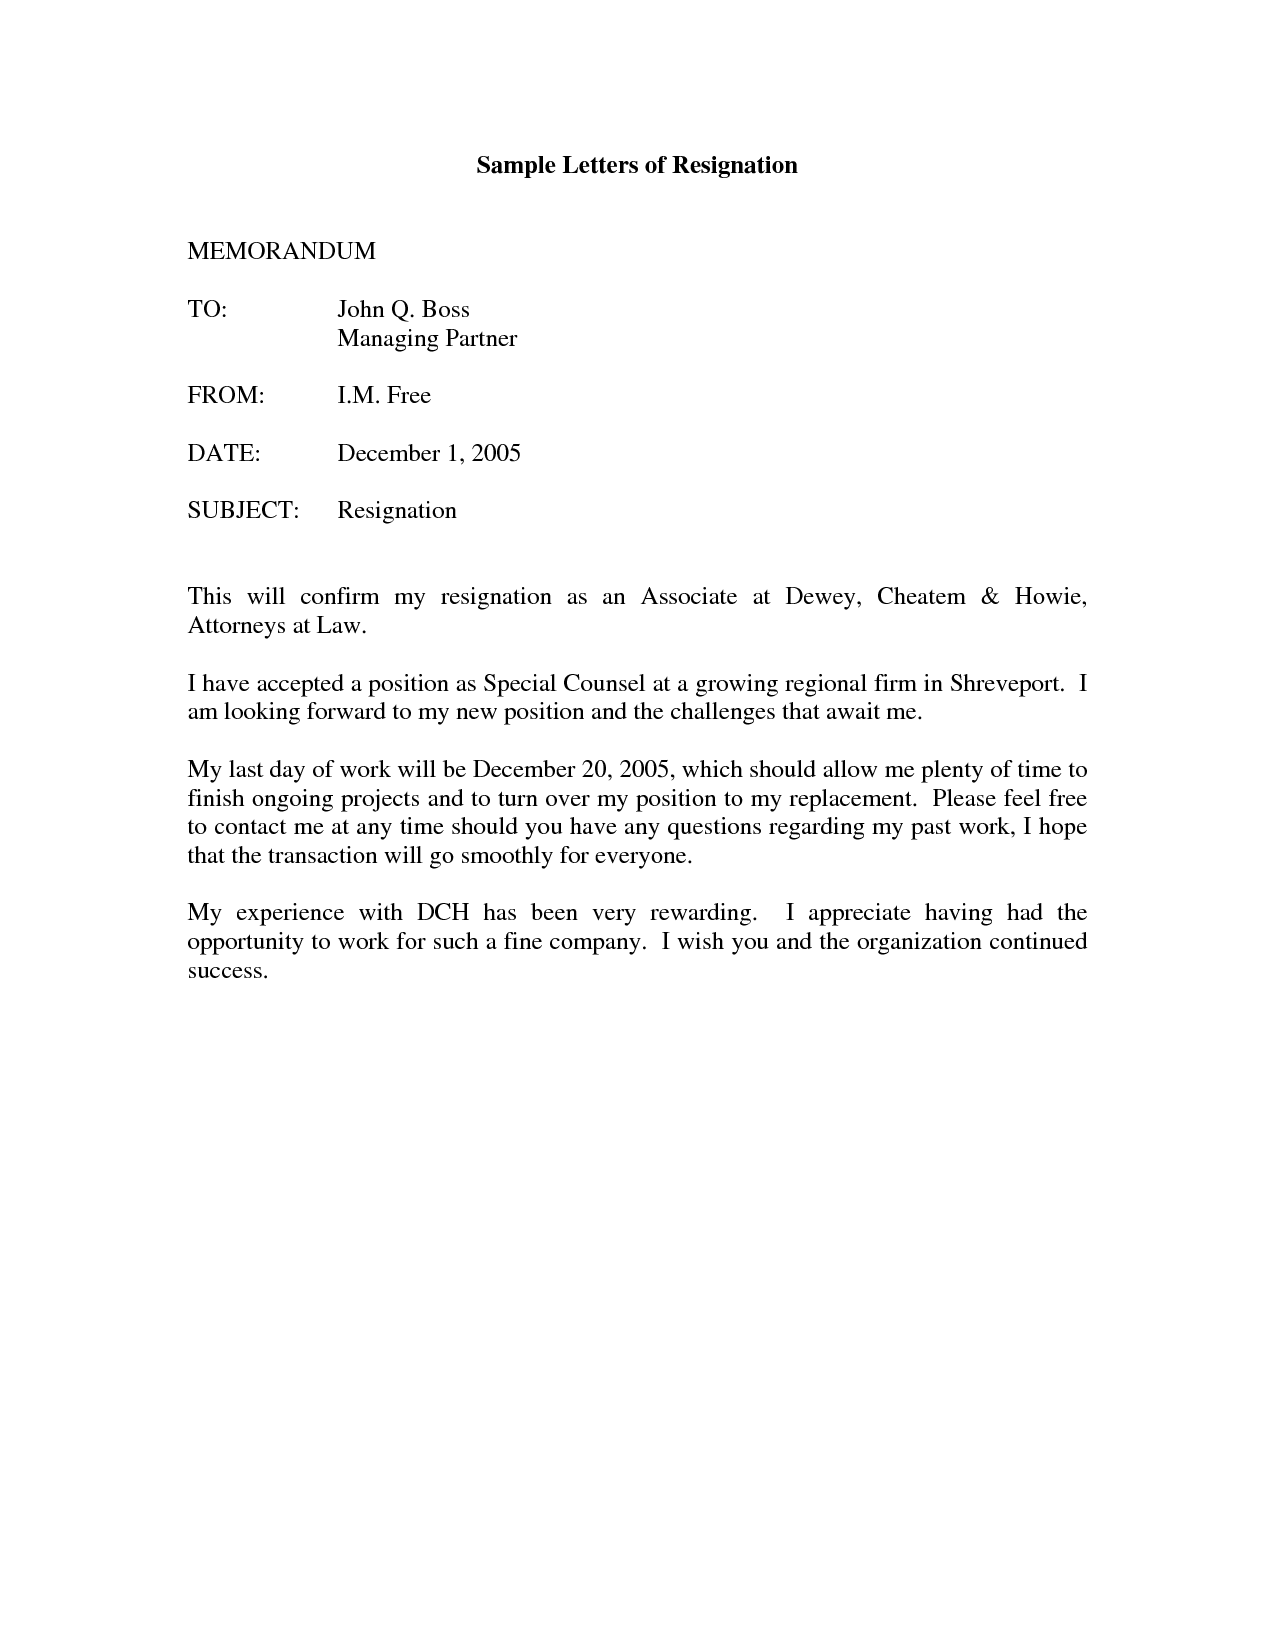 Printable Sample Letter of Resignation Form – Letter of Notice